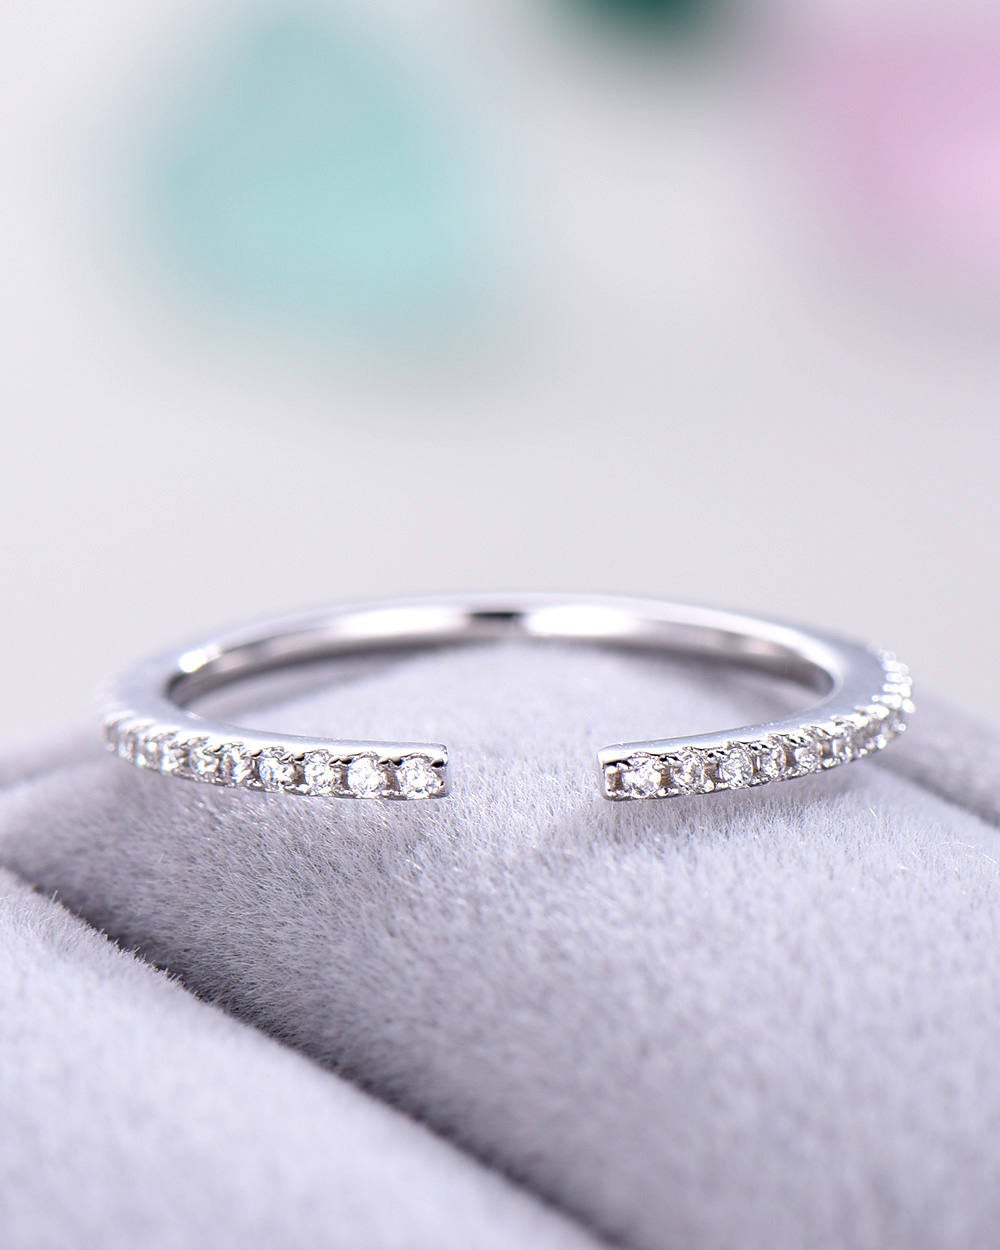 Cz Wedding Band Women 14K White Gold Sterling Silver Open Pave Eternity Stacking Bridal Ring Anniversary Matching Cubic Zircon Thin Set